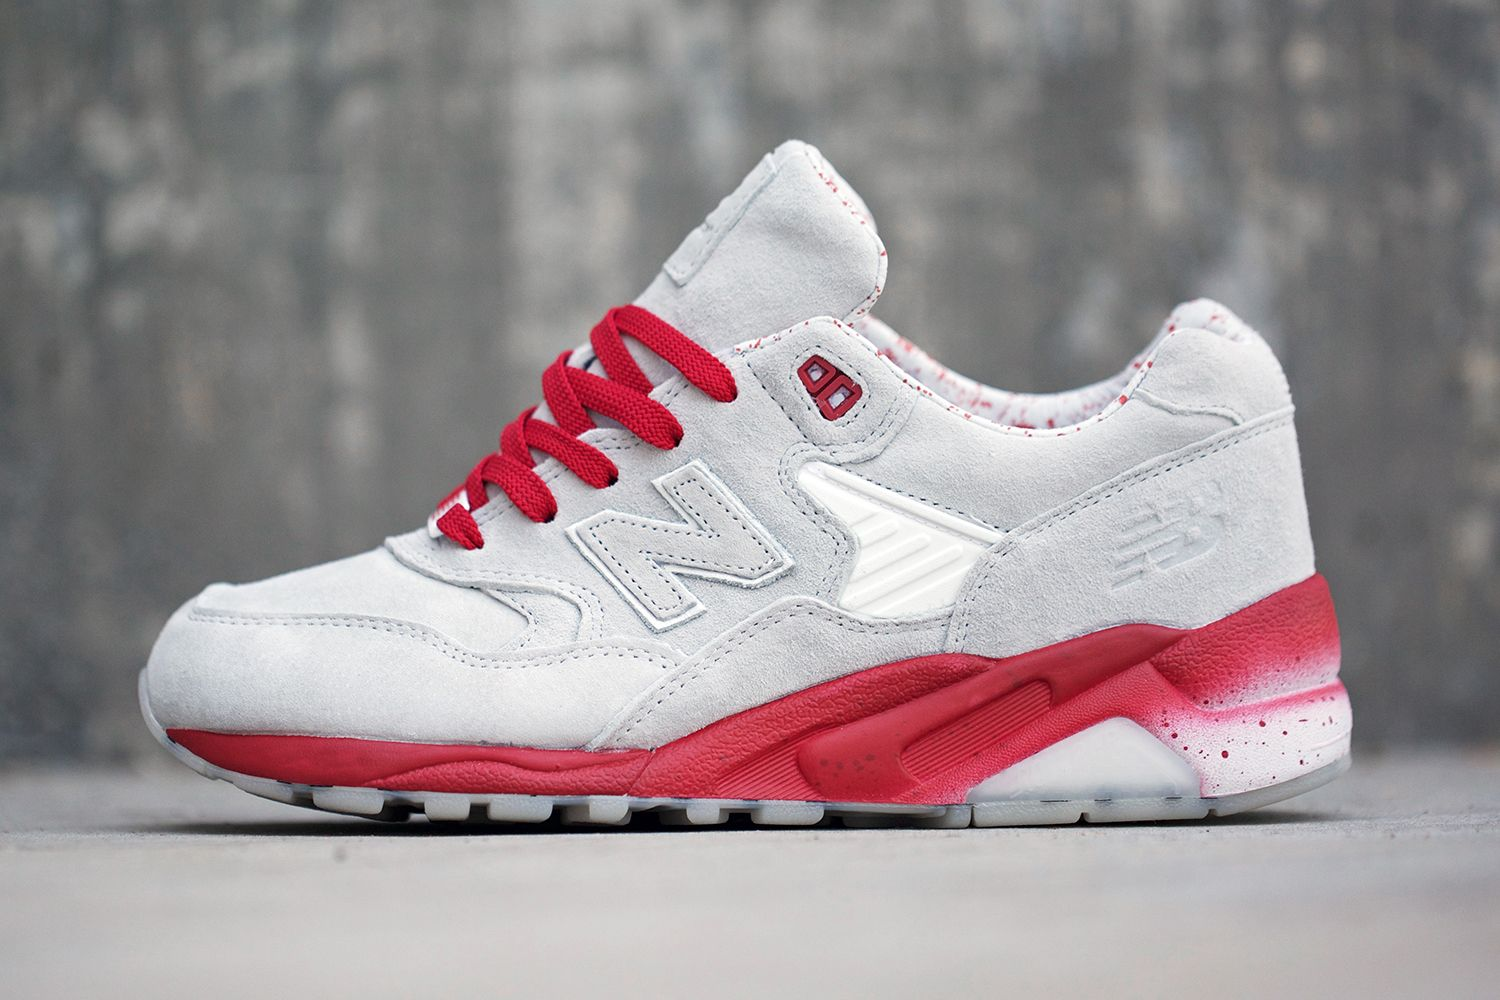 Bait Gijoe New Balance Mt 580 Storm Shadow Snake Eyes 0